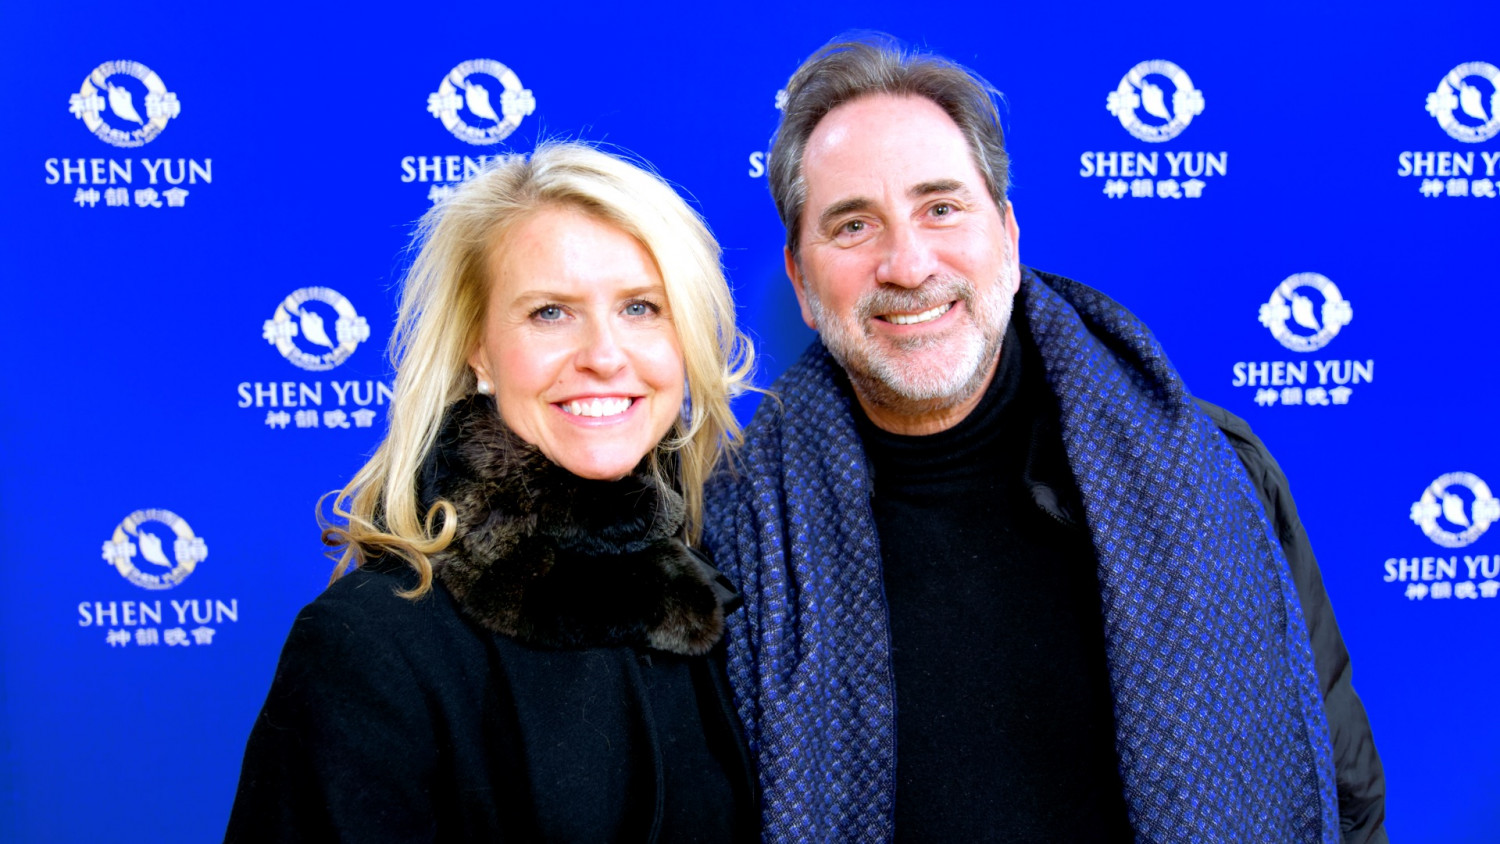 CEO of Luxury Men's Fashion Impressed by Shen Yun's Costumes